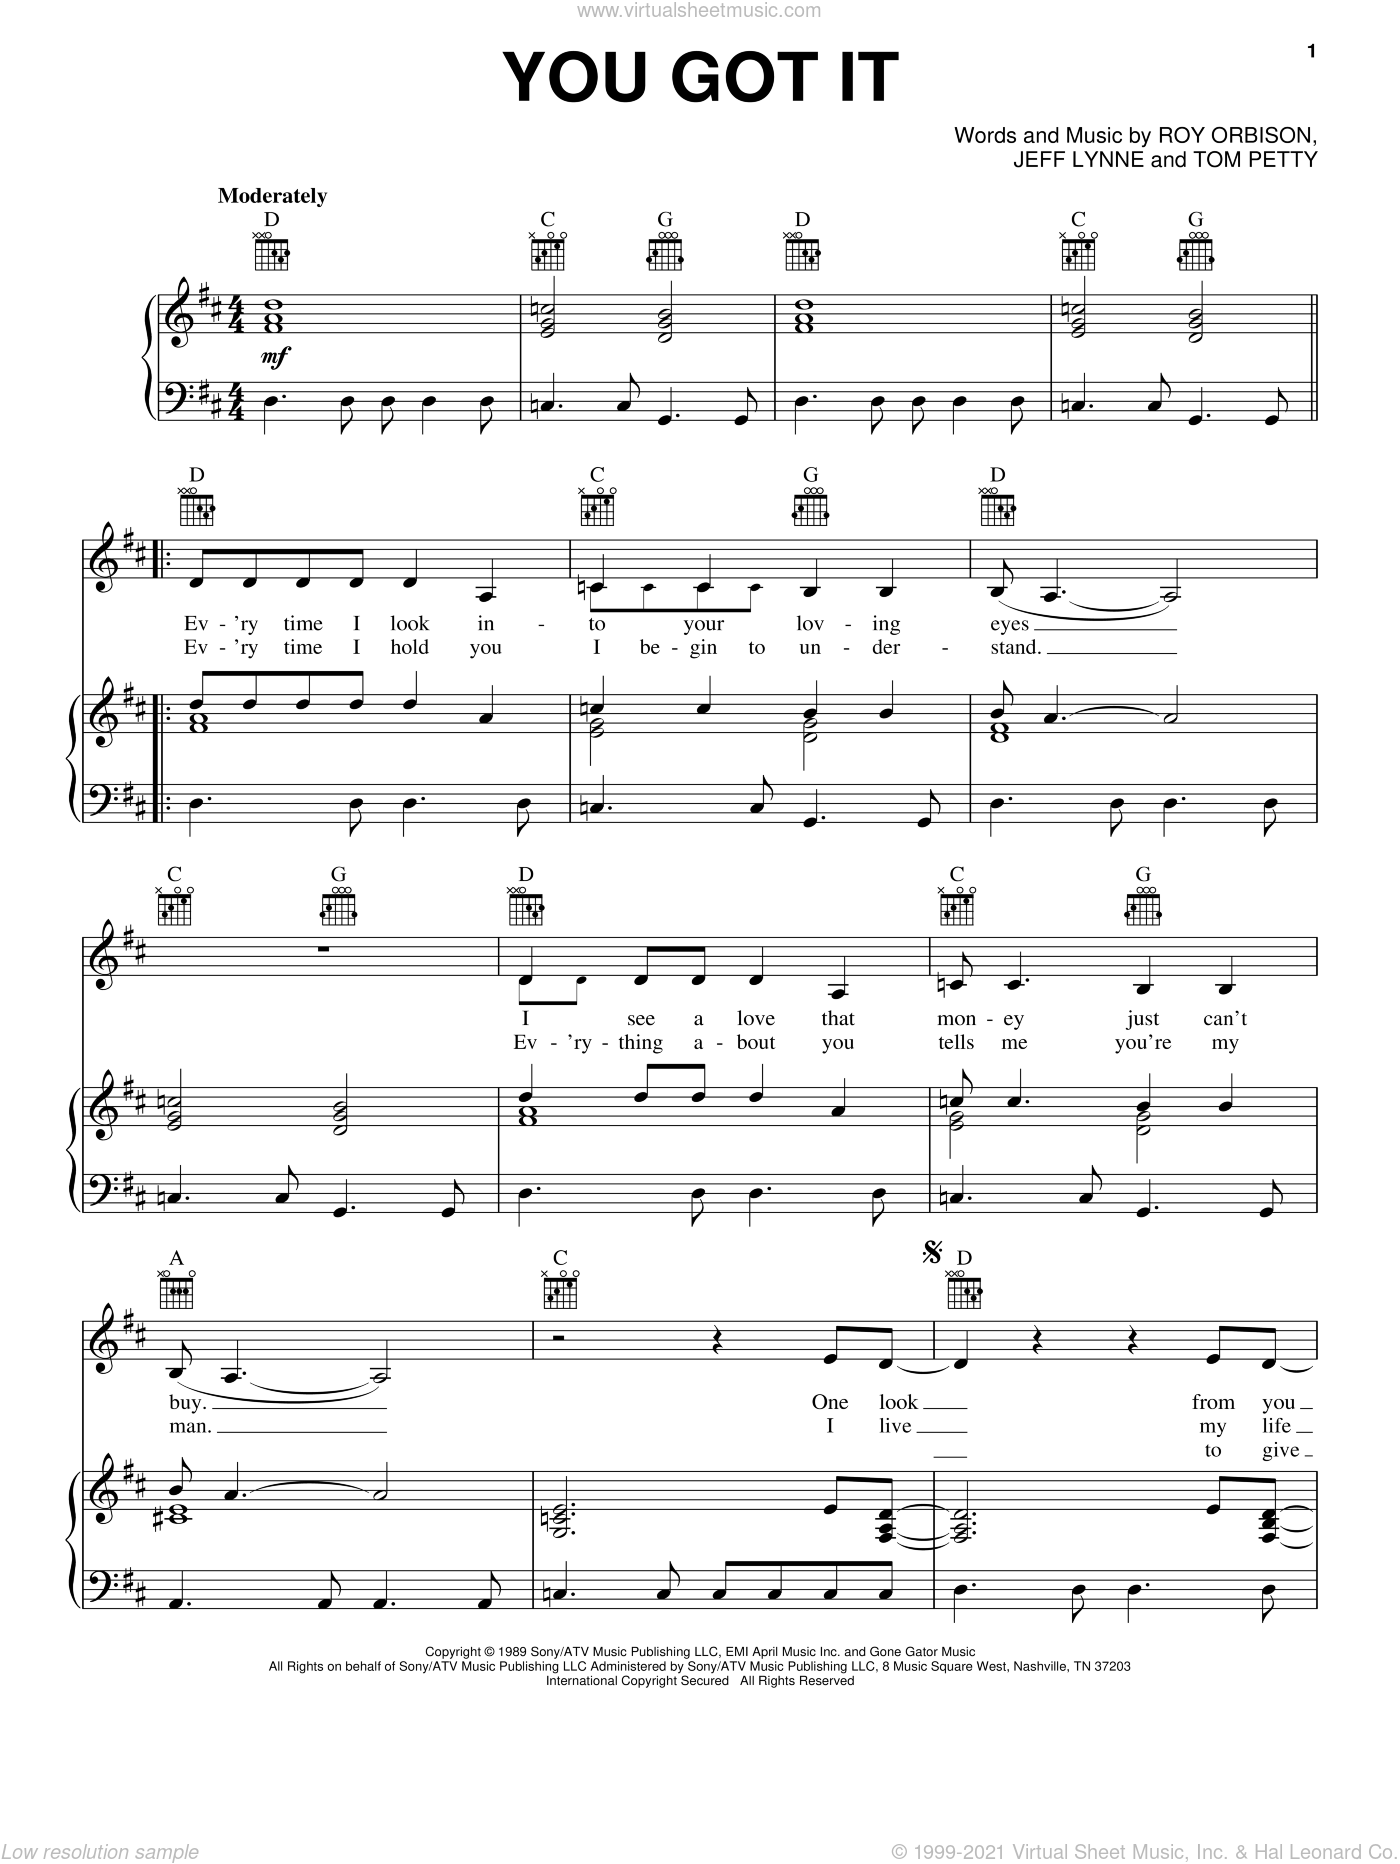 You Got It sheet music for voice, piano or guitar by Tom Petty, Bonnie Raitt, Jeff Lynne and Roy Orbison, intermediate skill level